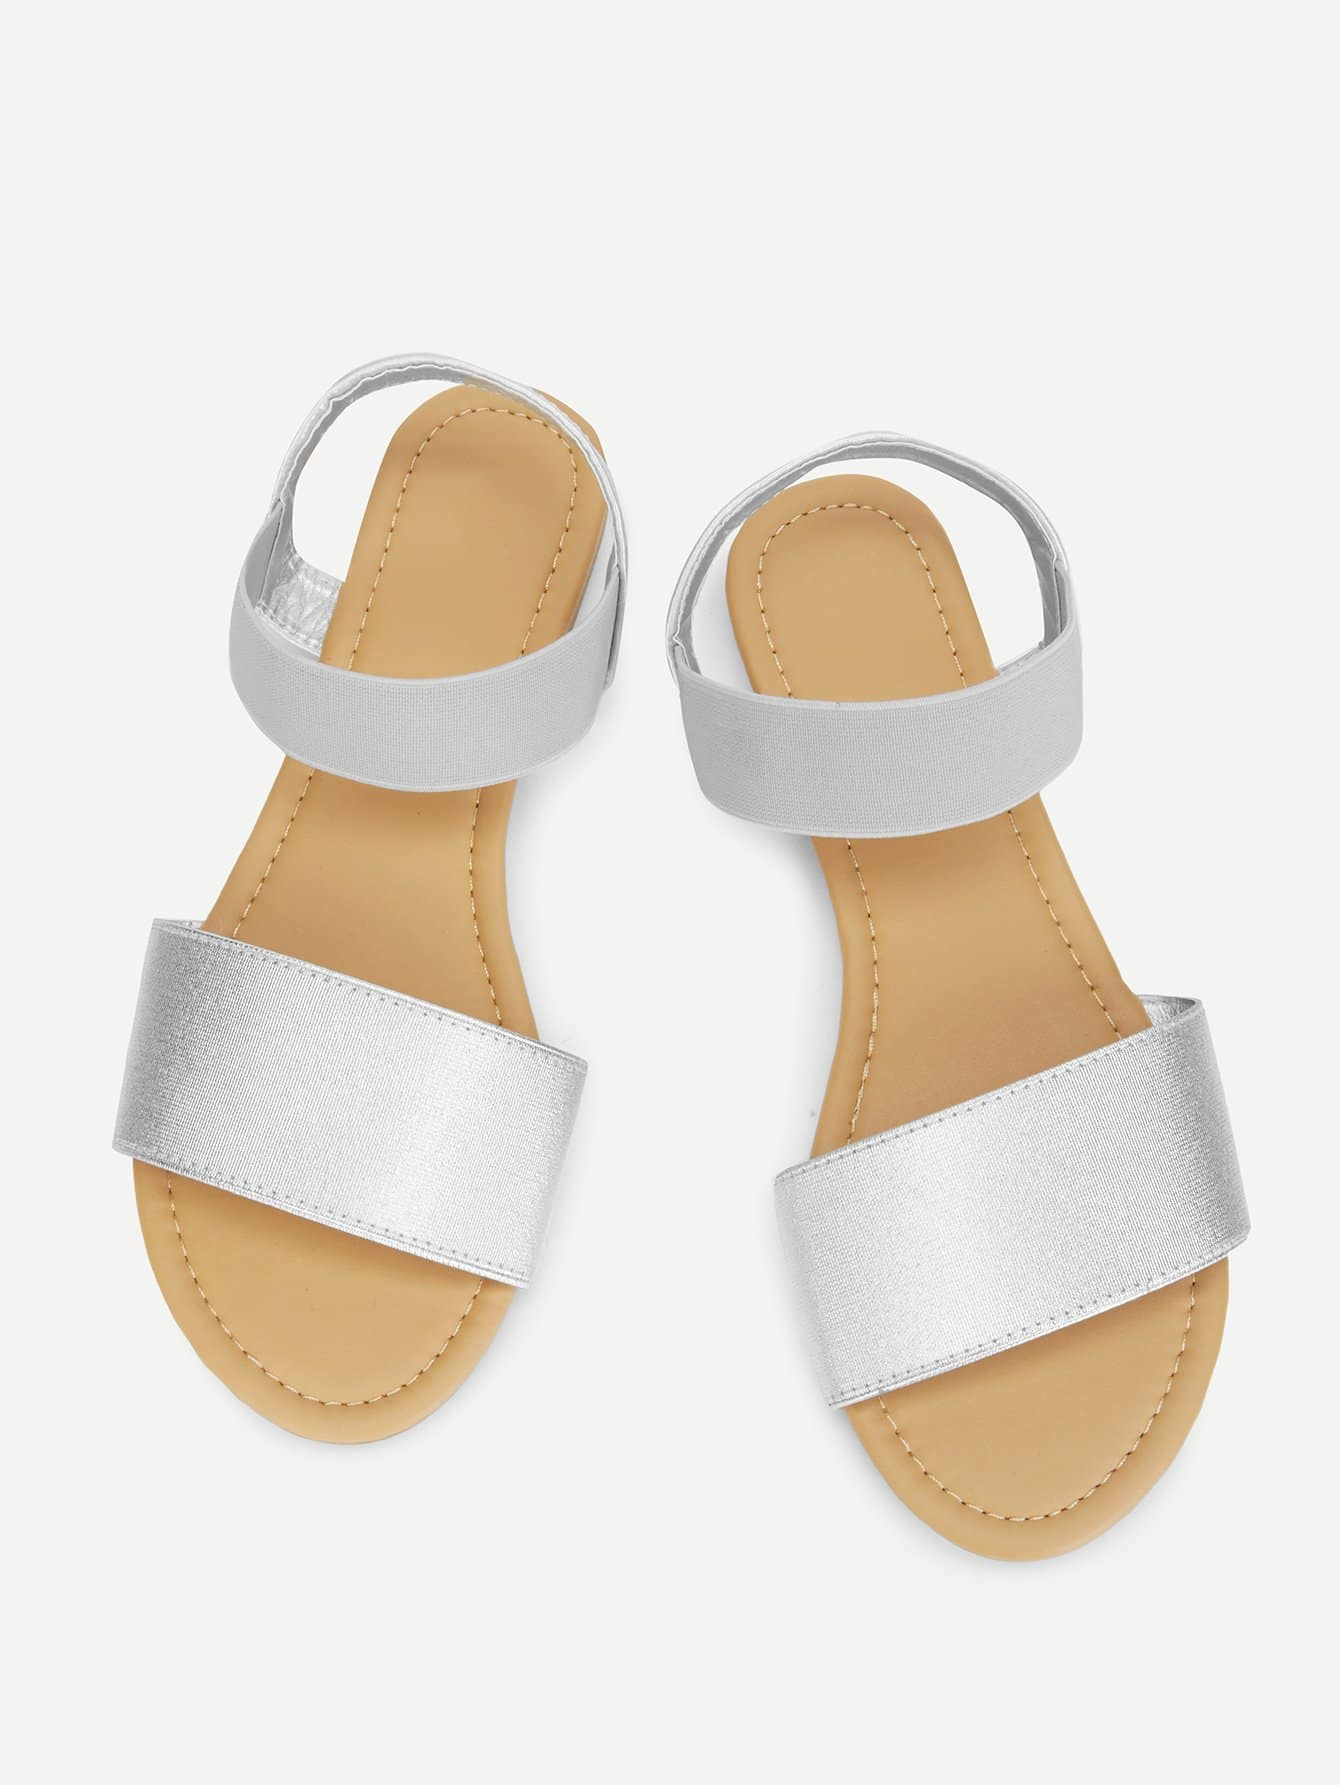 Peep Toe Elastic Flat Sandals xda 2018 new summer sandals women flat shoes bandage bohemia leisure lady casual sandals peep toe outdoor fashion sandals f171